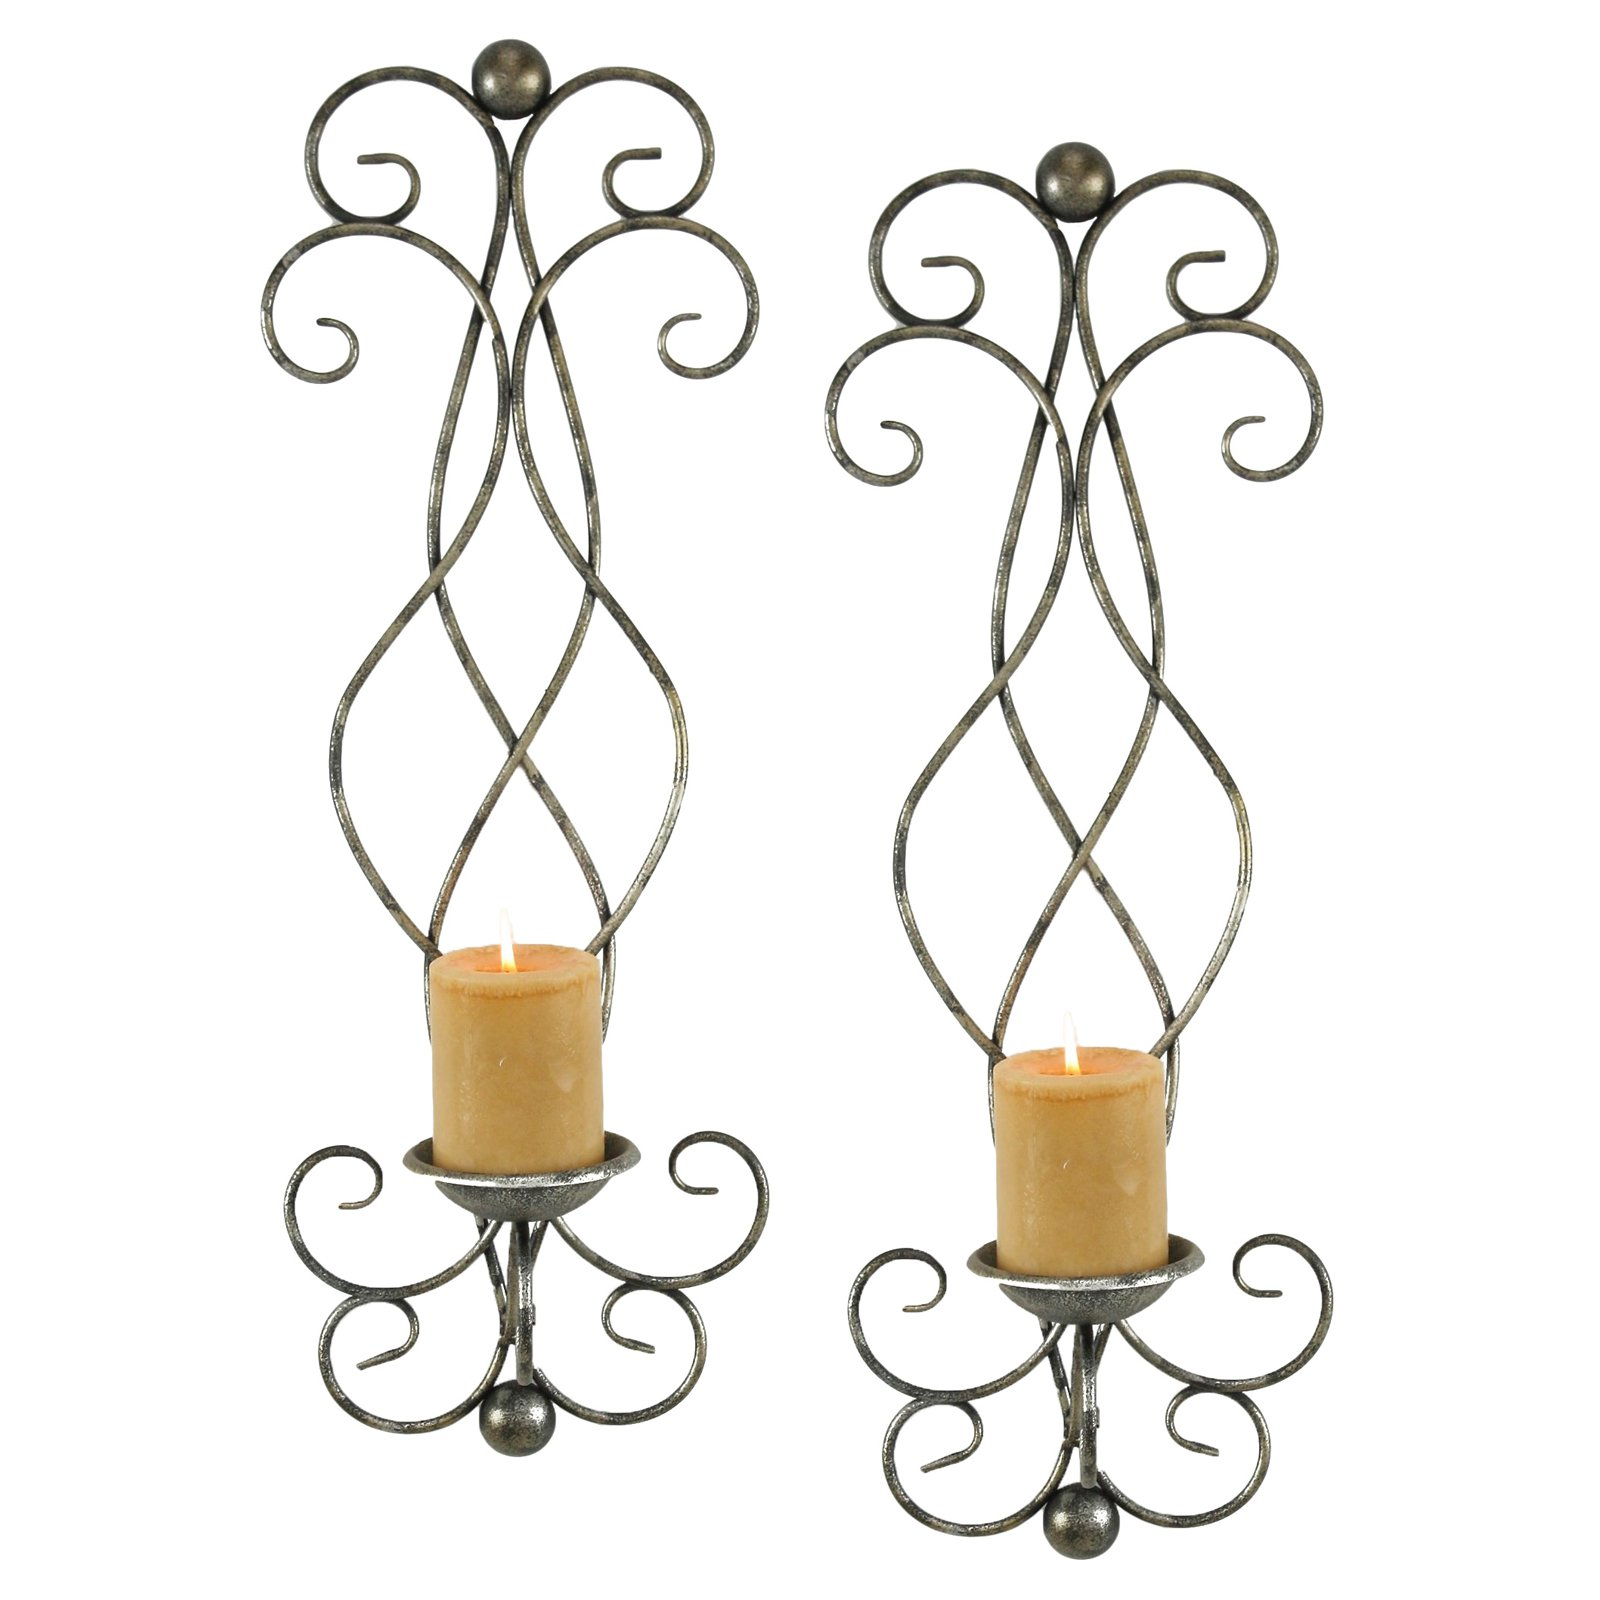 Aspire Home Accents Estelle Candle Wall Sconce - Set of 2